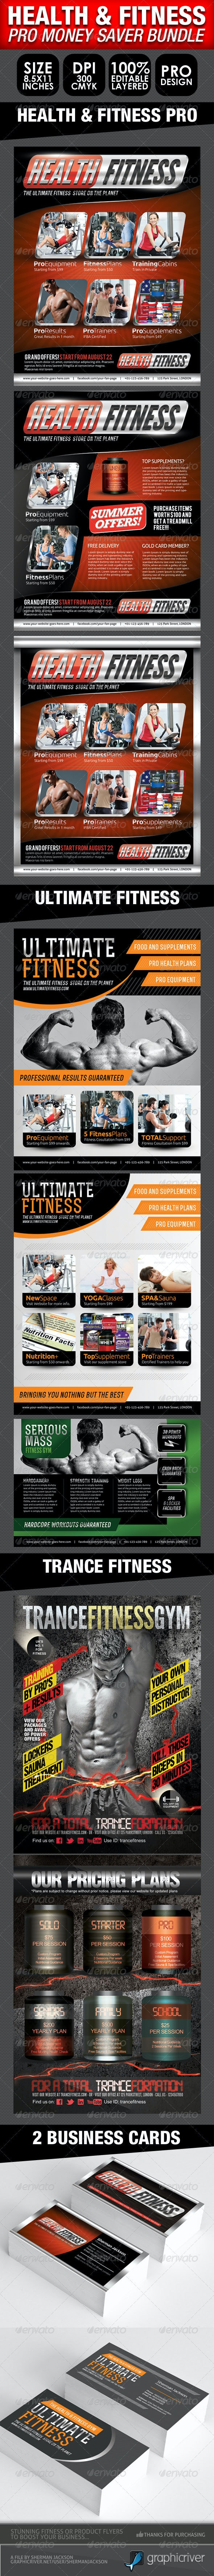 Health, Sports, Fitness Flyer Bundle  - Commerce Flyers